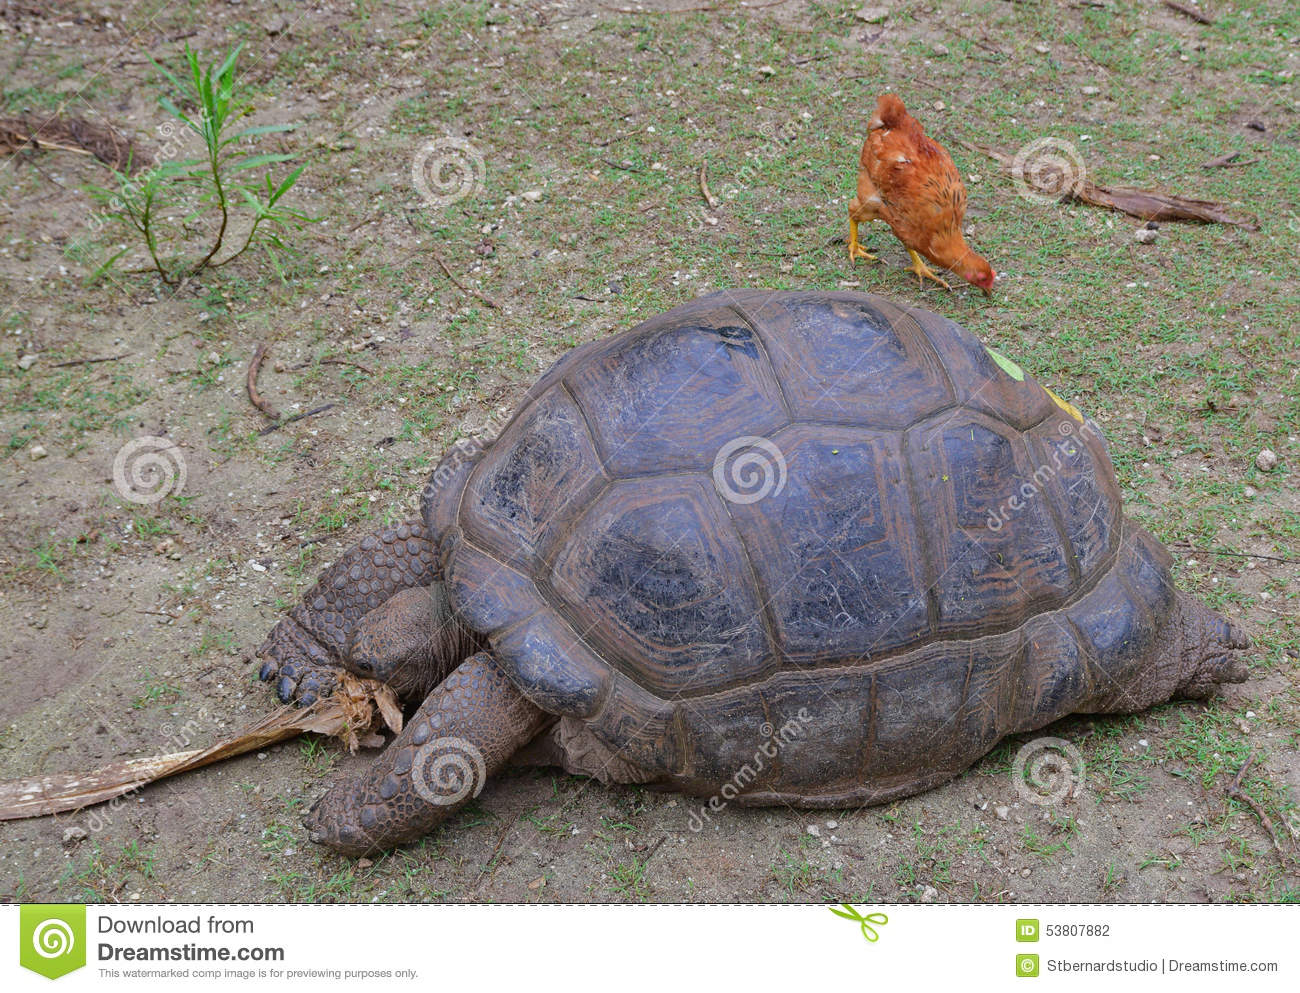 An Aldabra giant tortoise trying to shred a dry tree bark while a chicken is searching for food behind